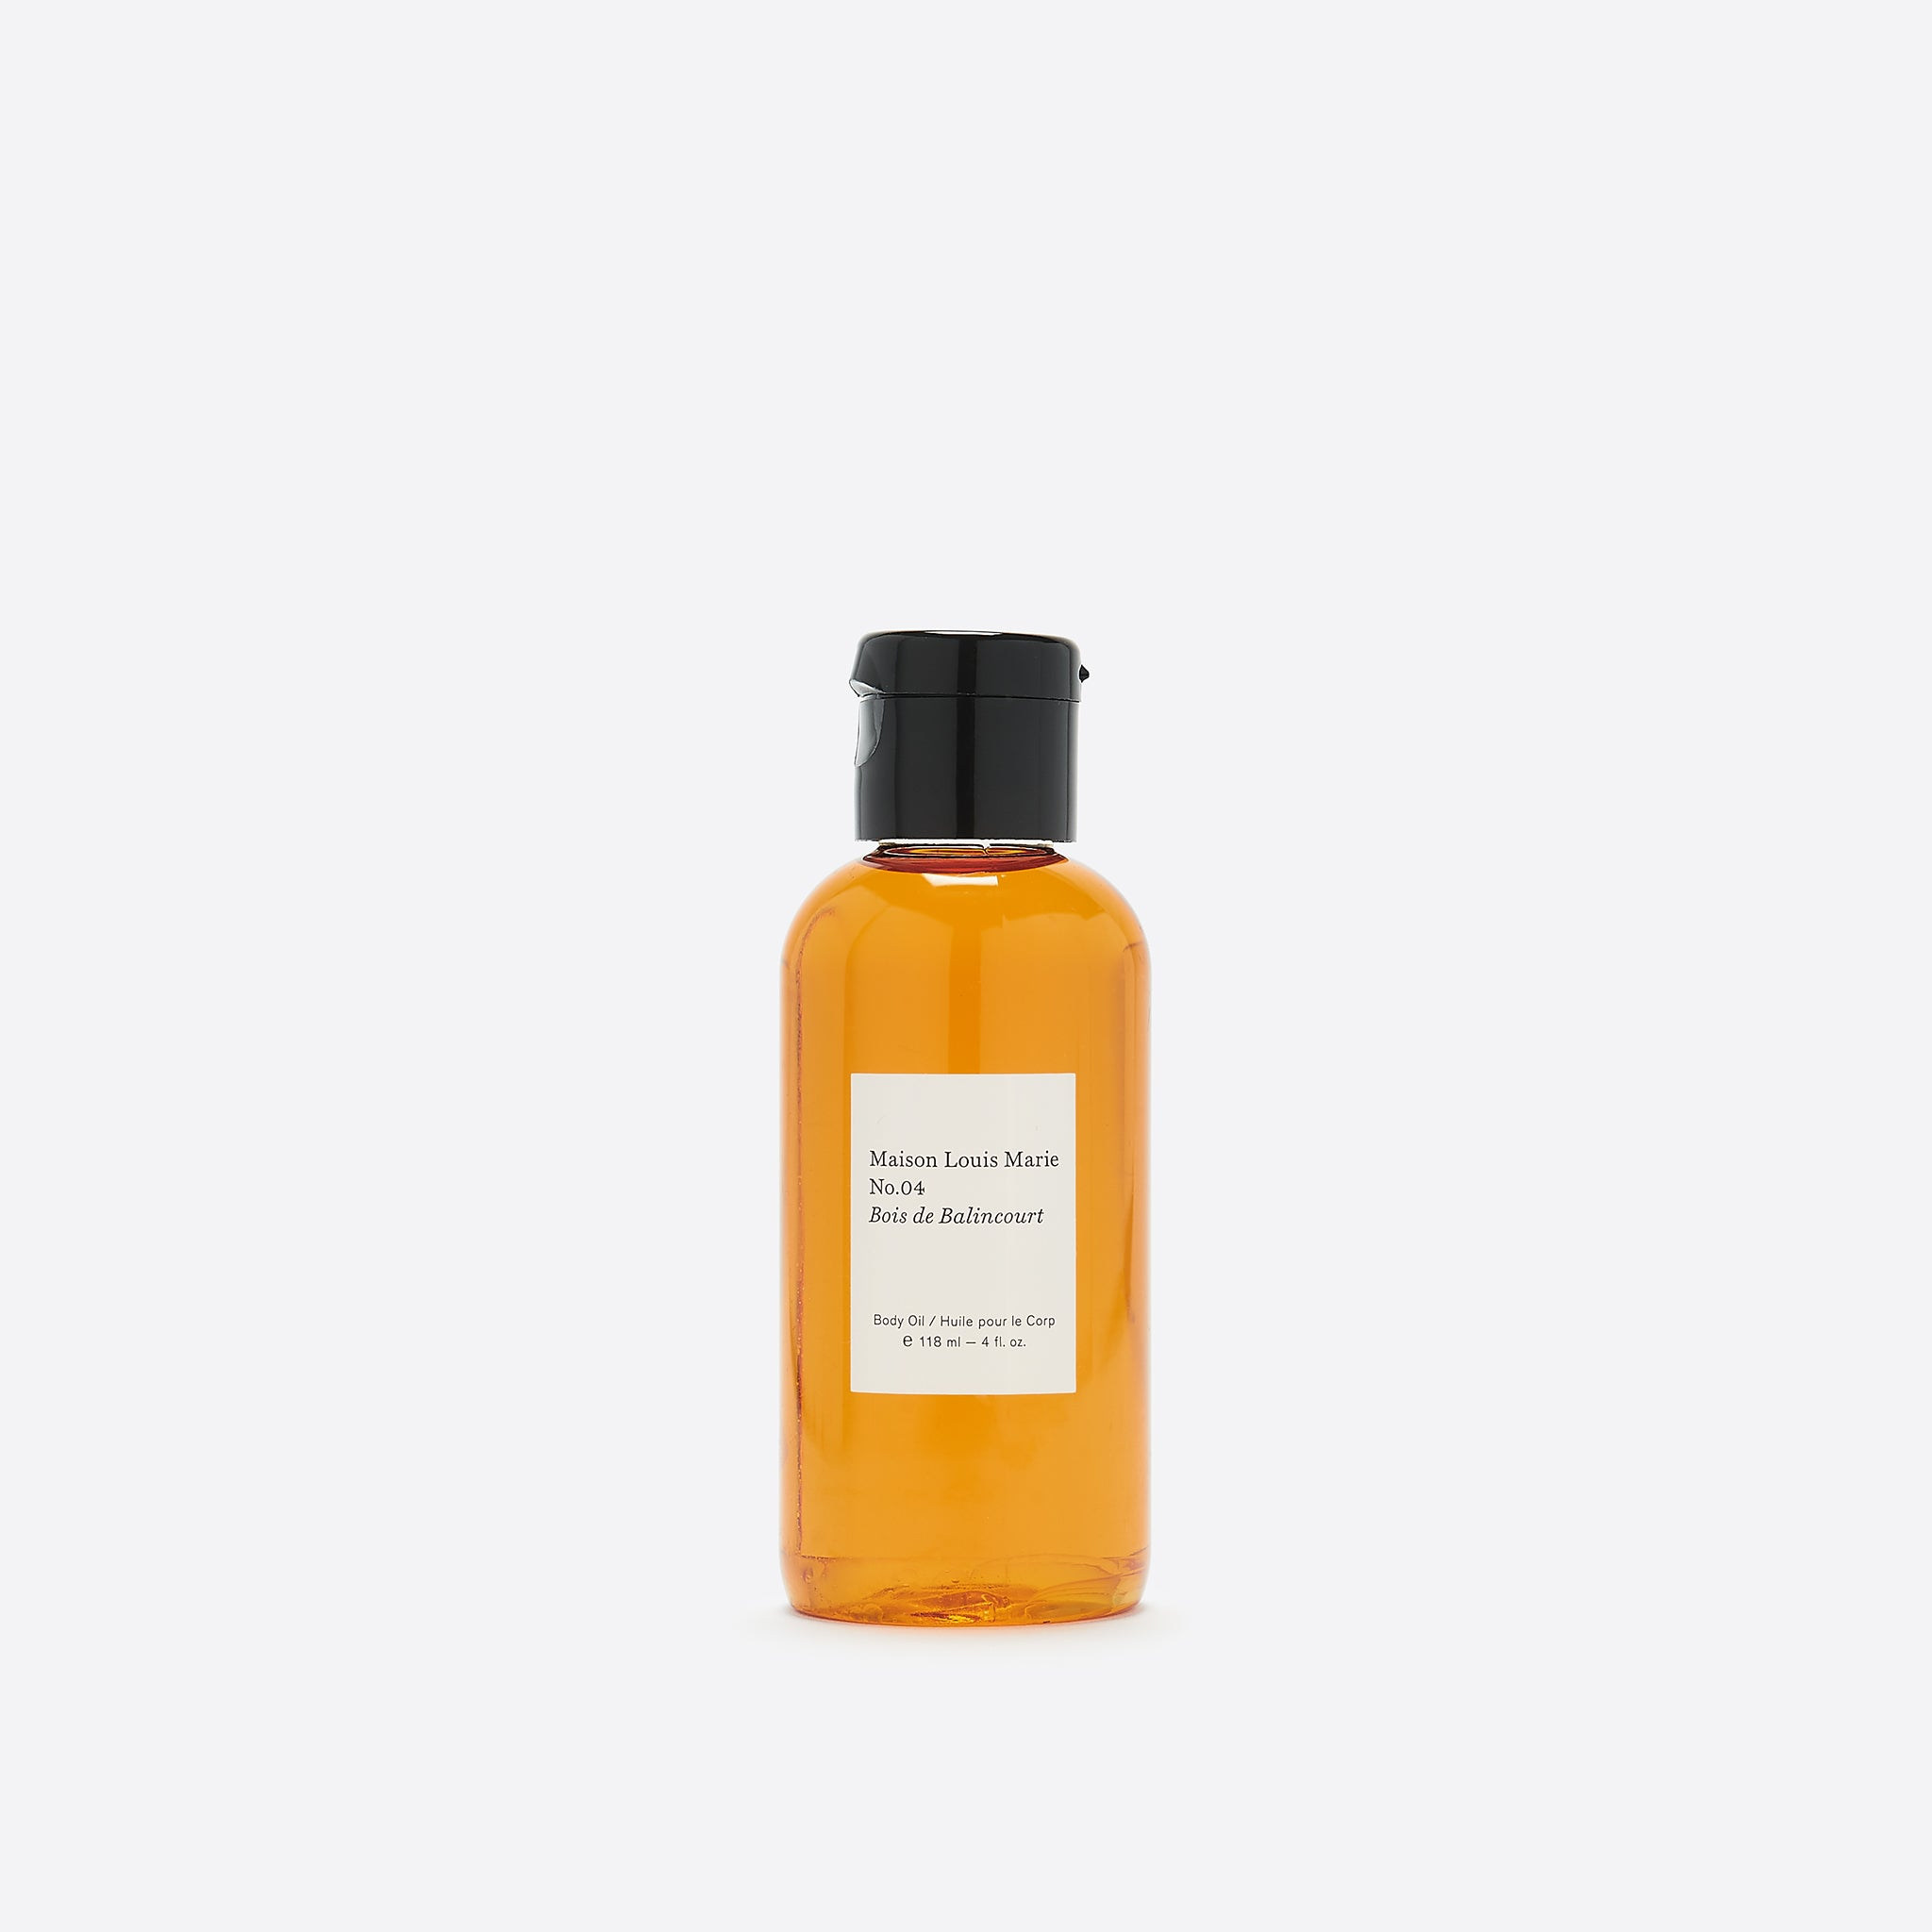 Maison Louis Marie Body Oil in No.4 Bois de Balincourt